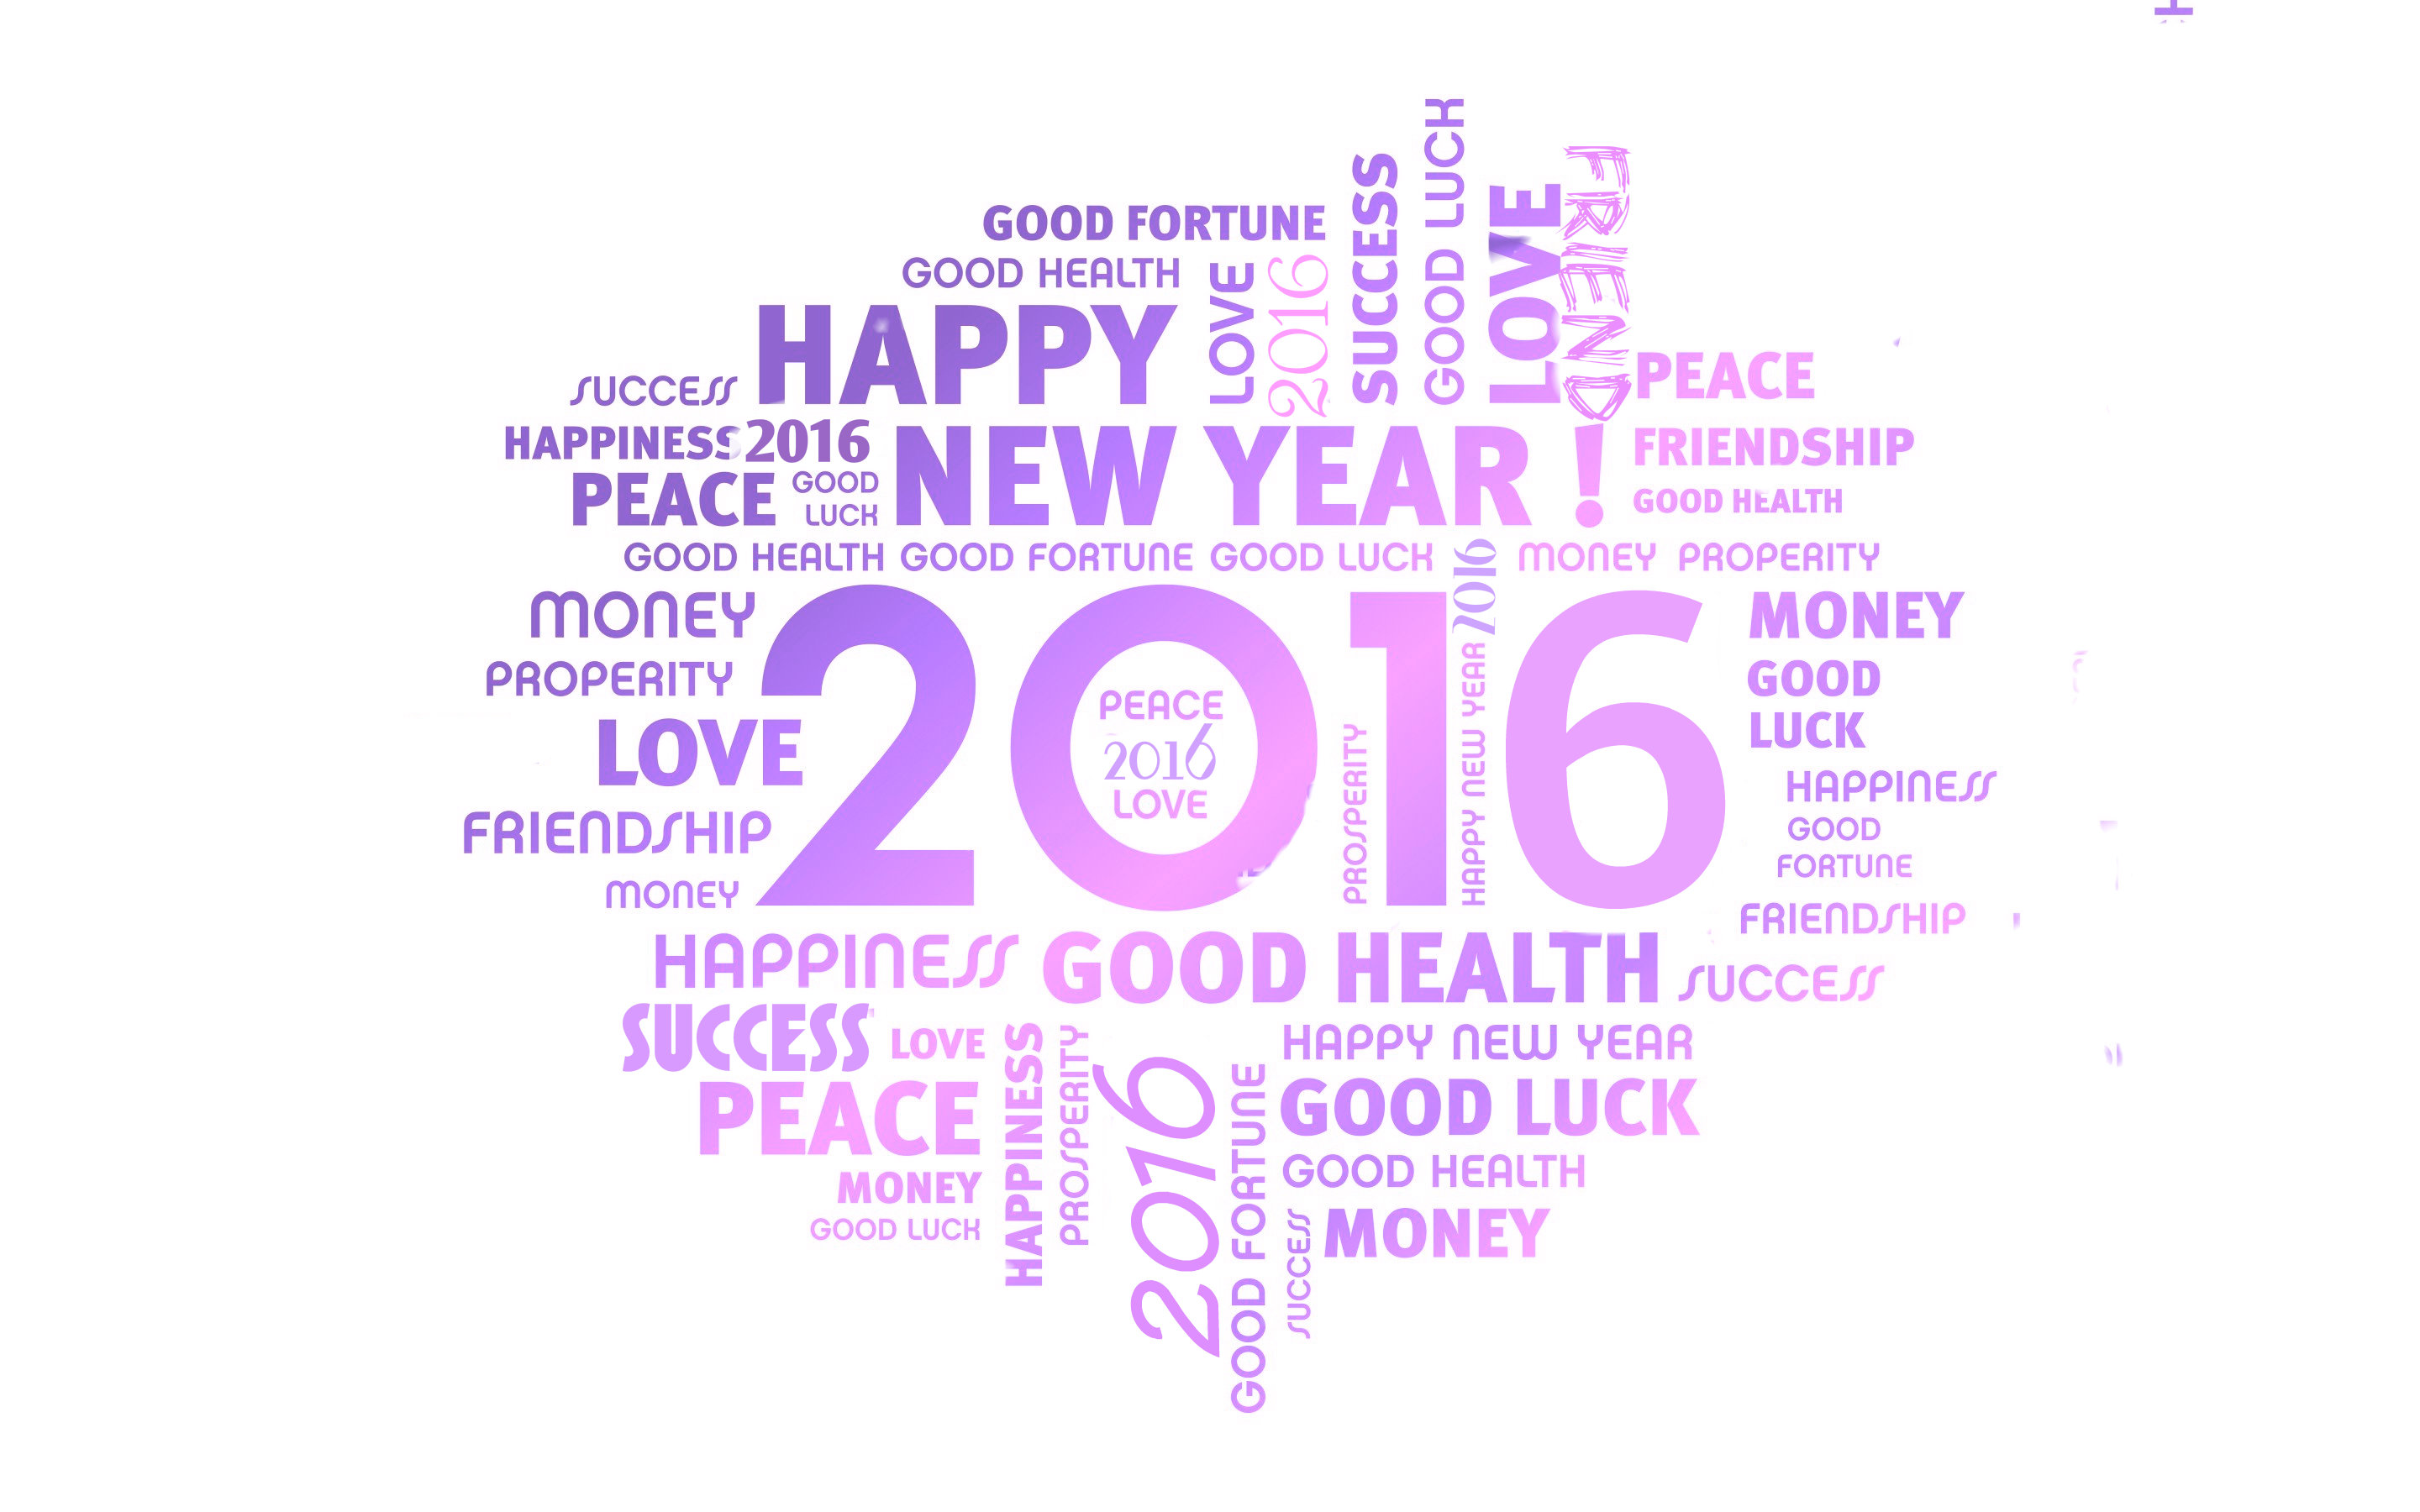 Happy New Year 2016 Greetings & Best Wishes Wallpapers 493